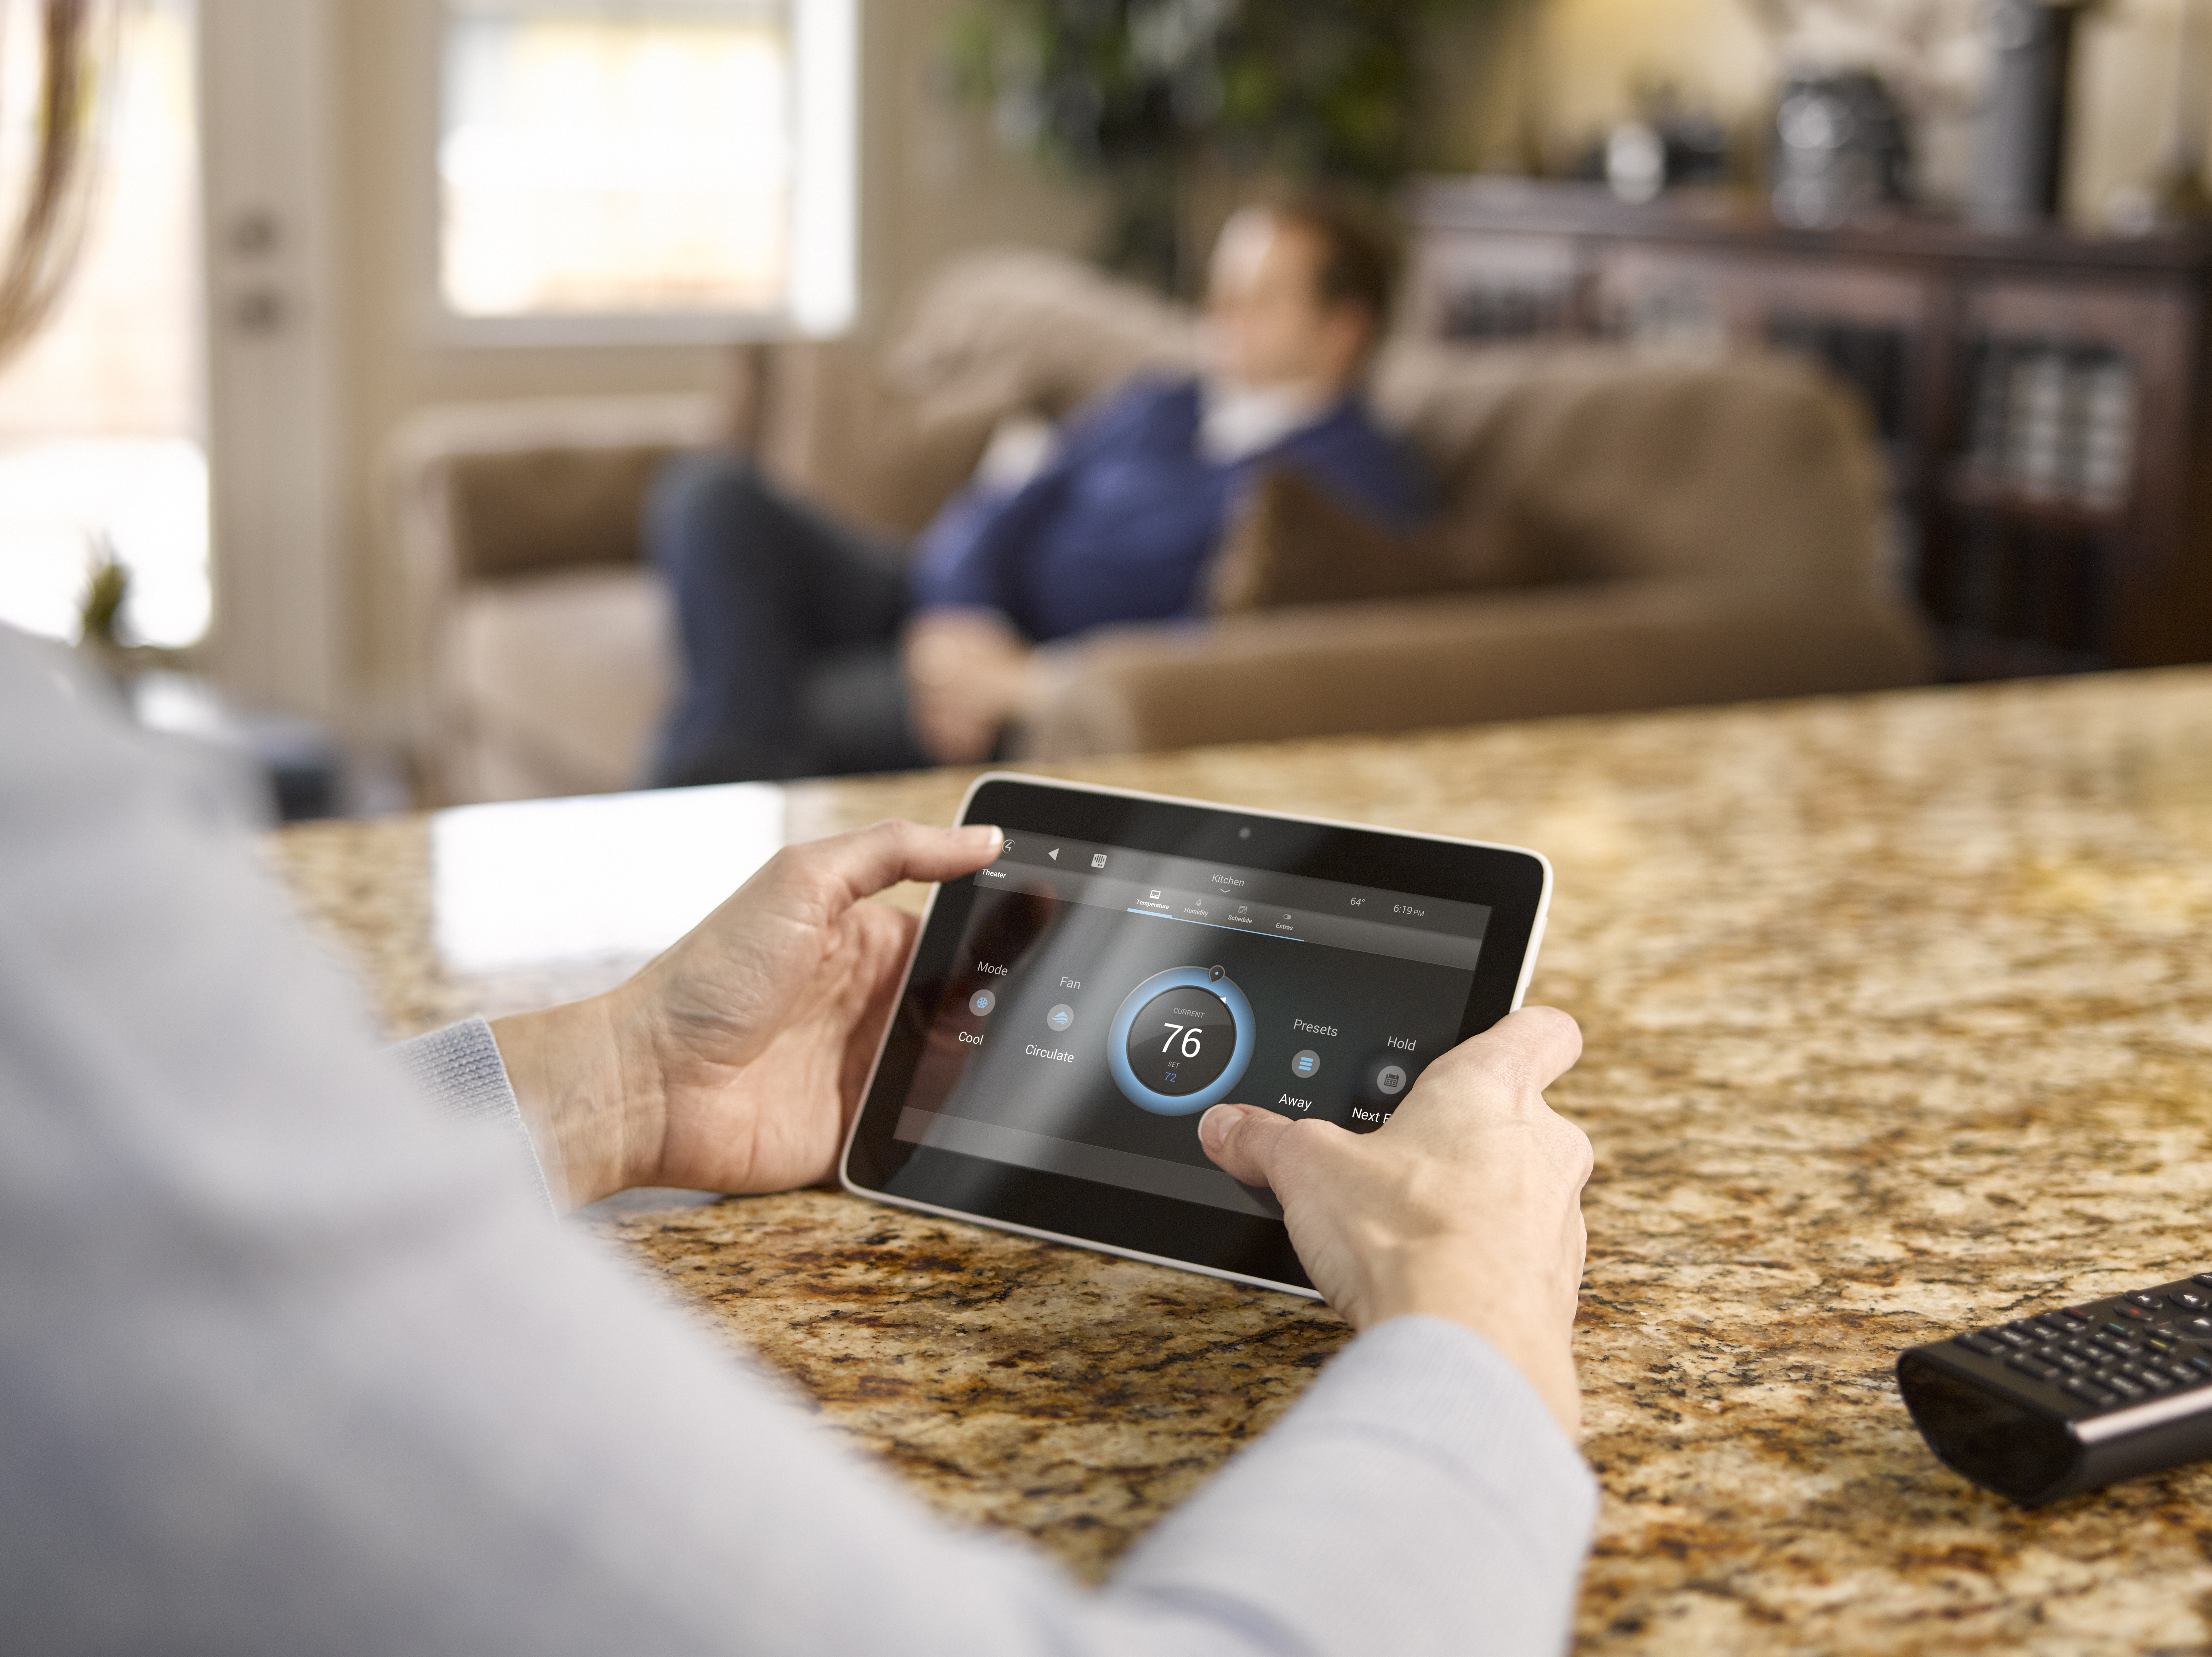 control4-lifestyle-tabletop-touchscreen-1.jpg